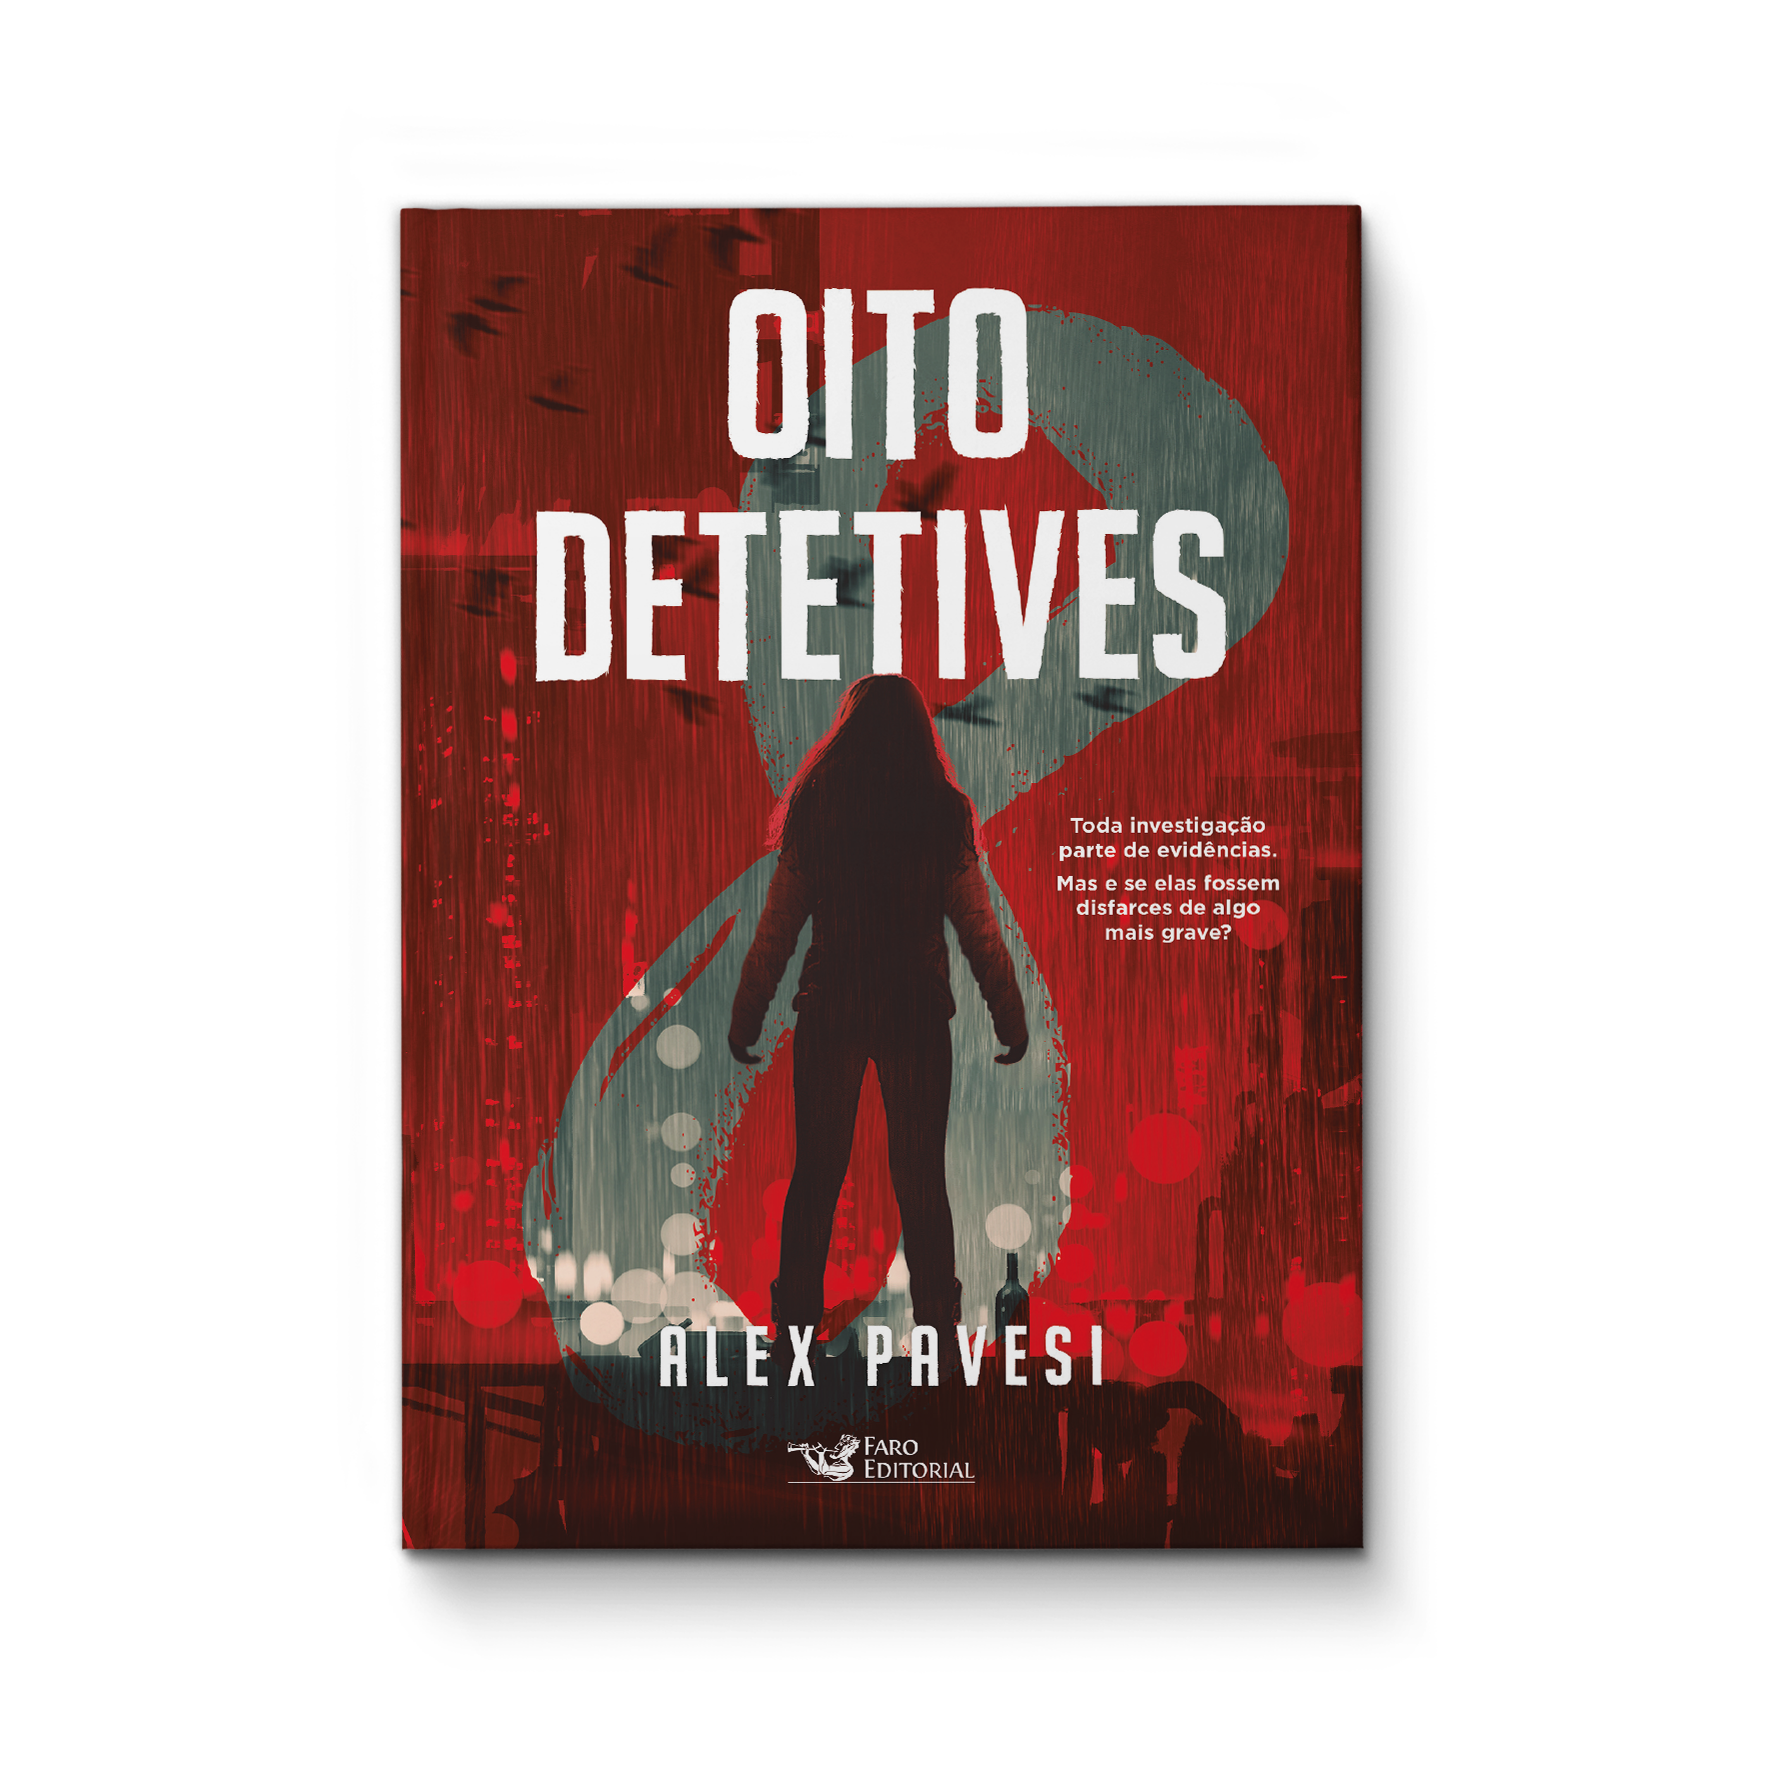 Oito detetives – Alex Pavesi